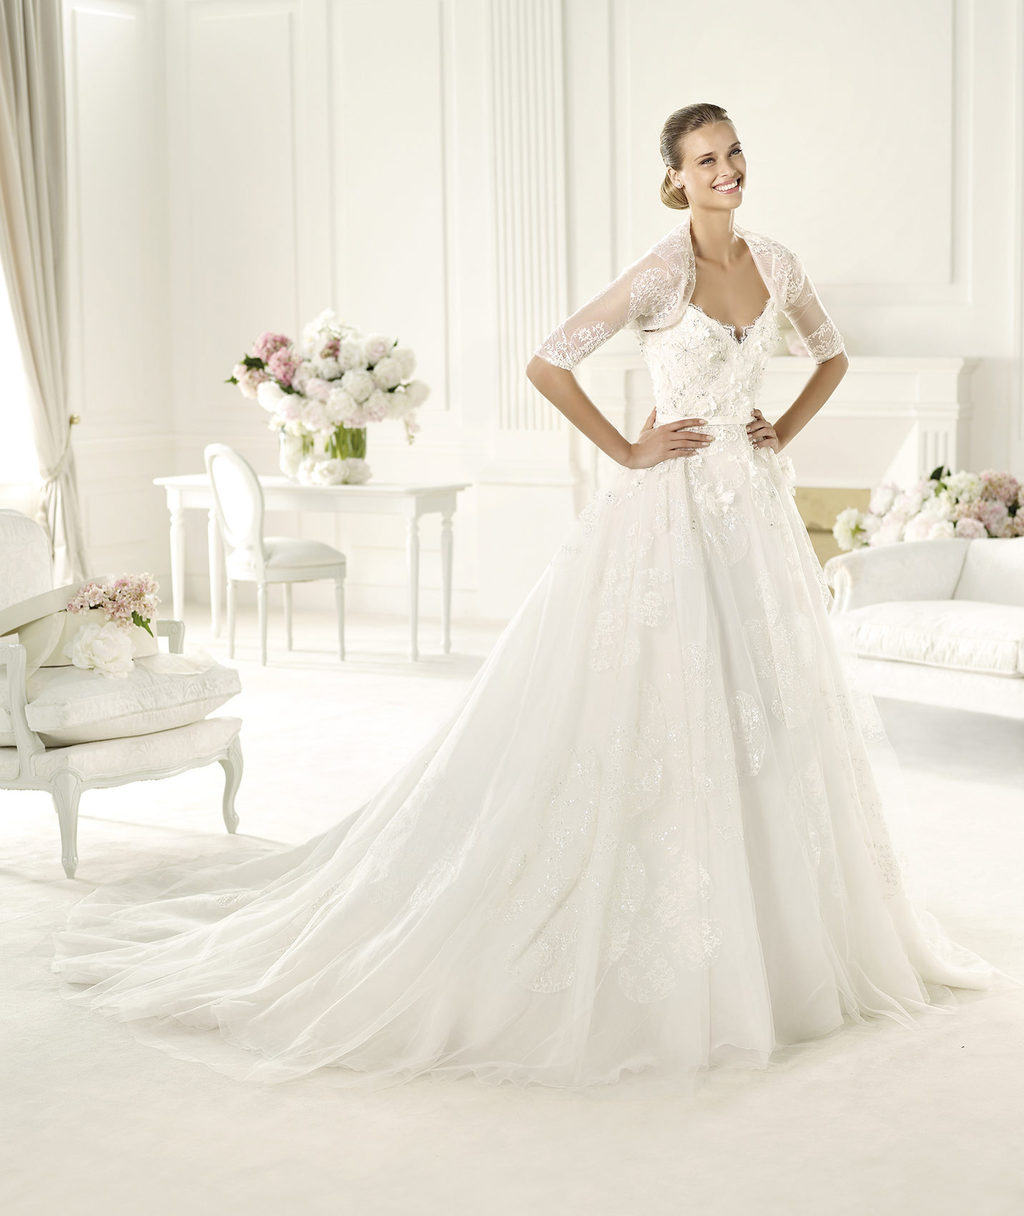 Elie-saab-2013-wedding-dress-for-pronovias-dione.full